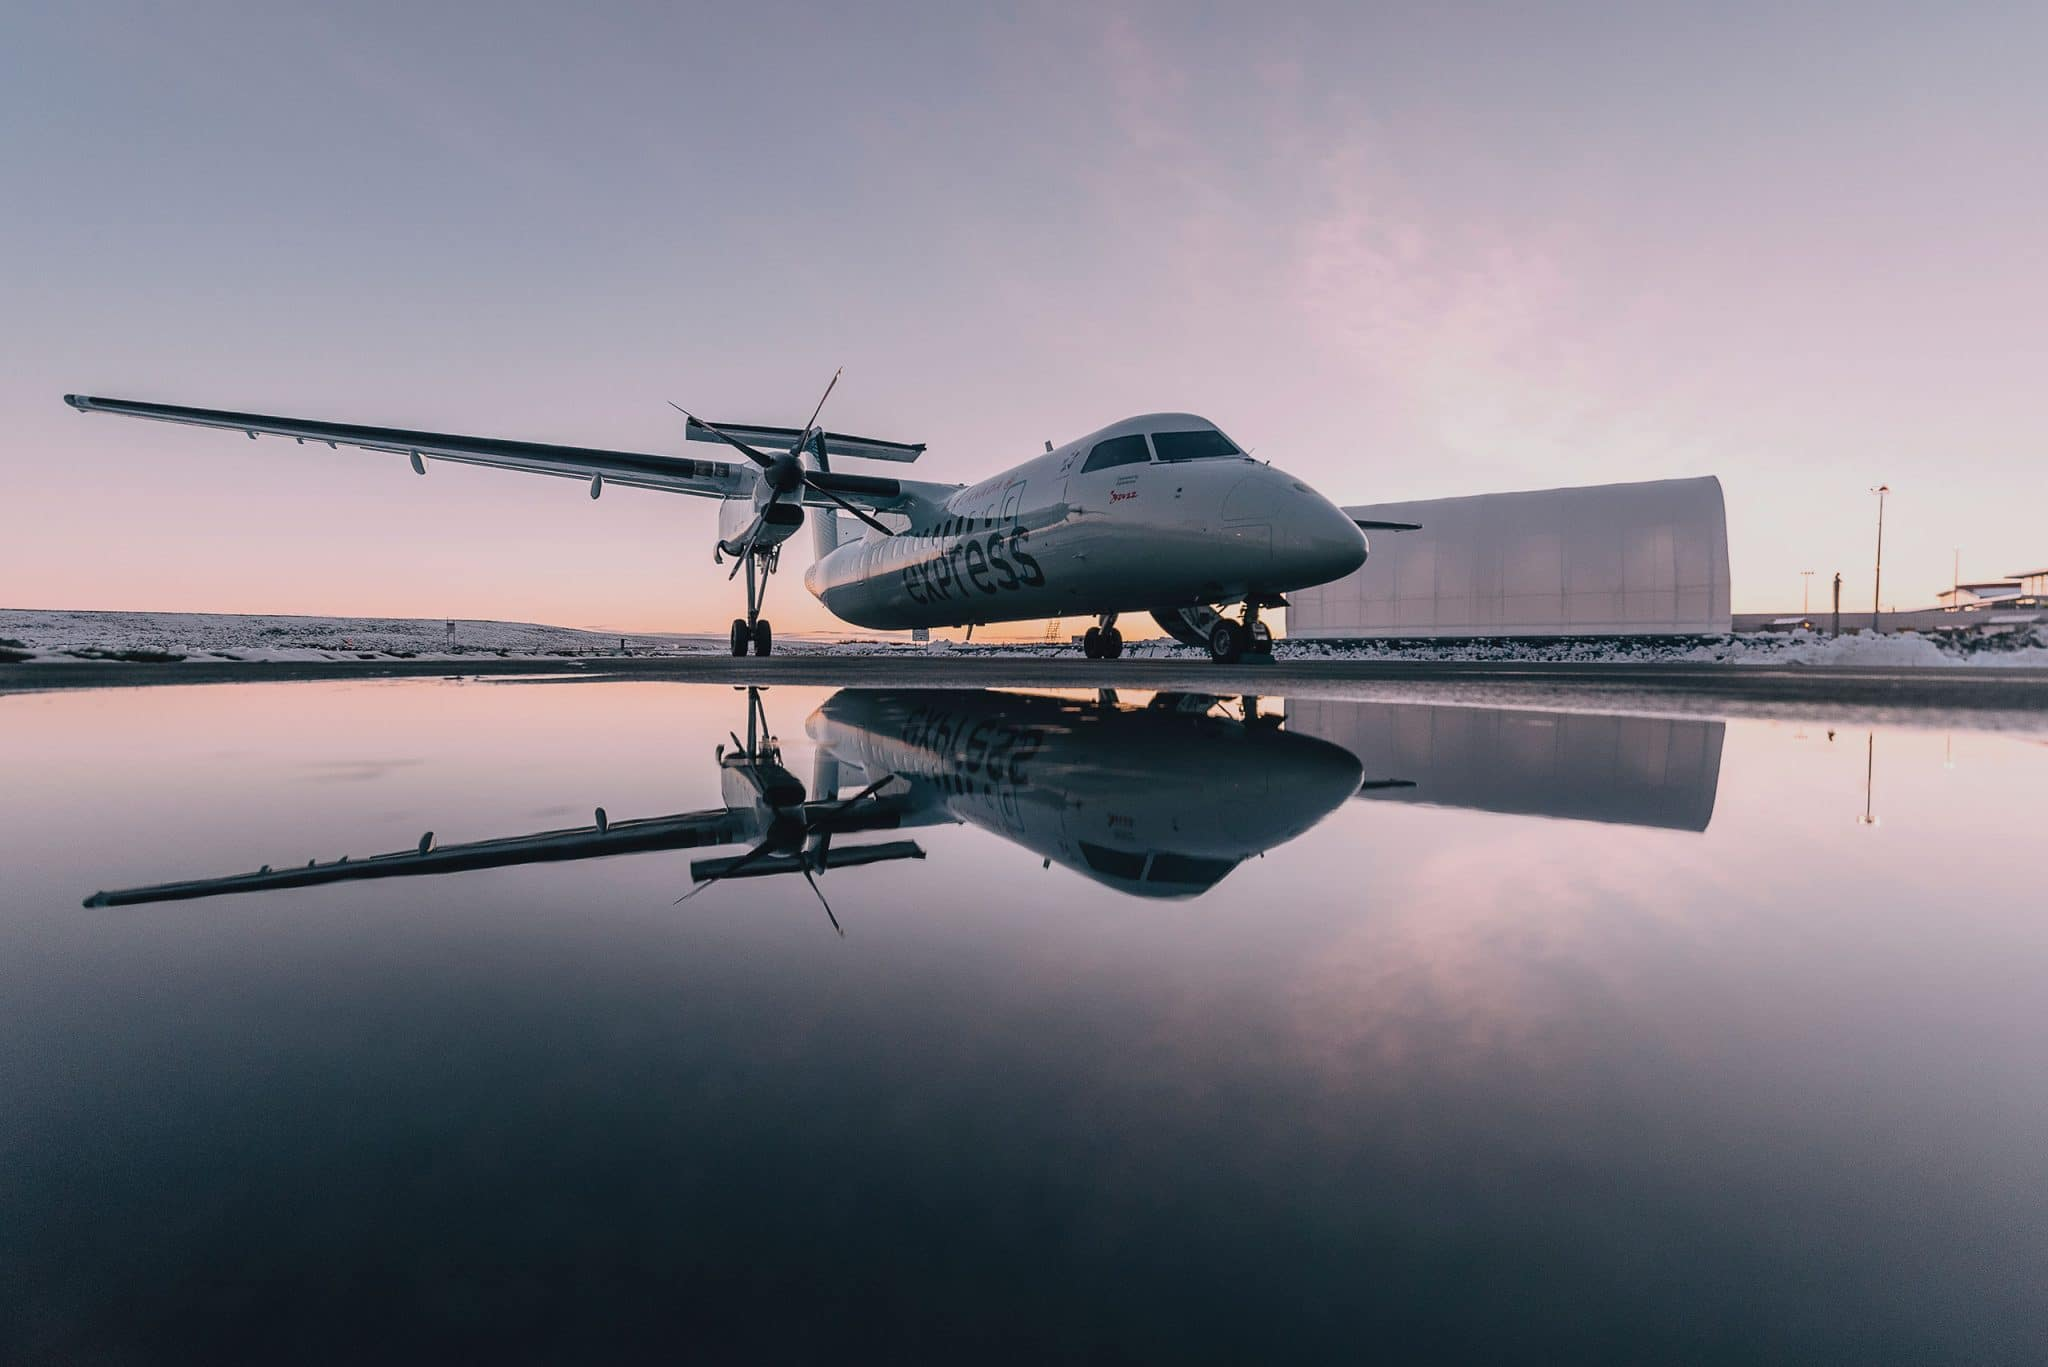 Jet sits on wet runway at dusk casting a perfect reflection.